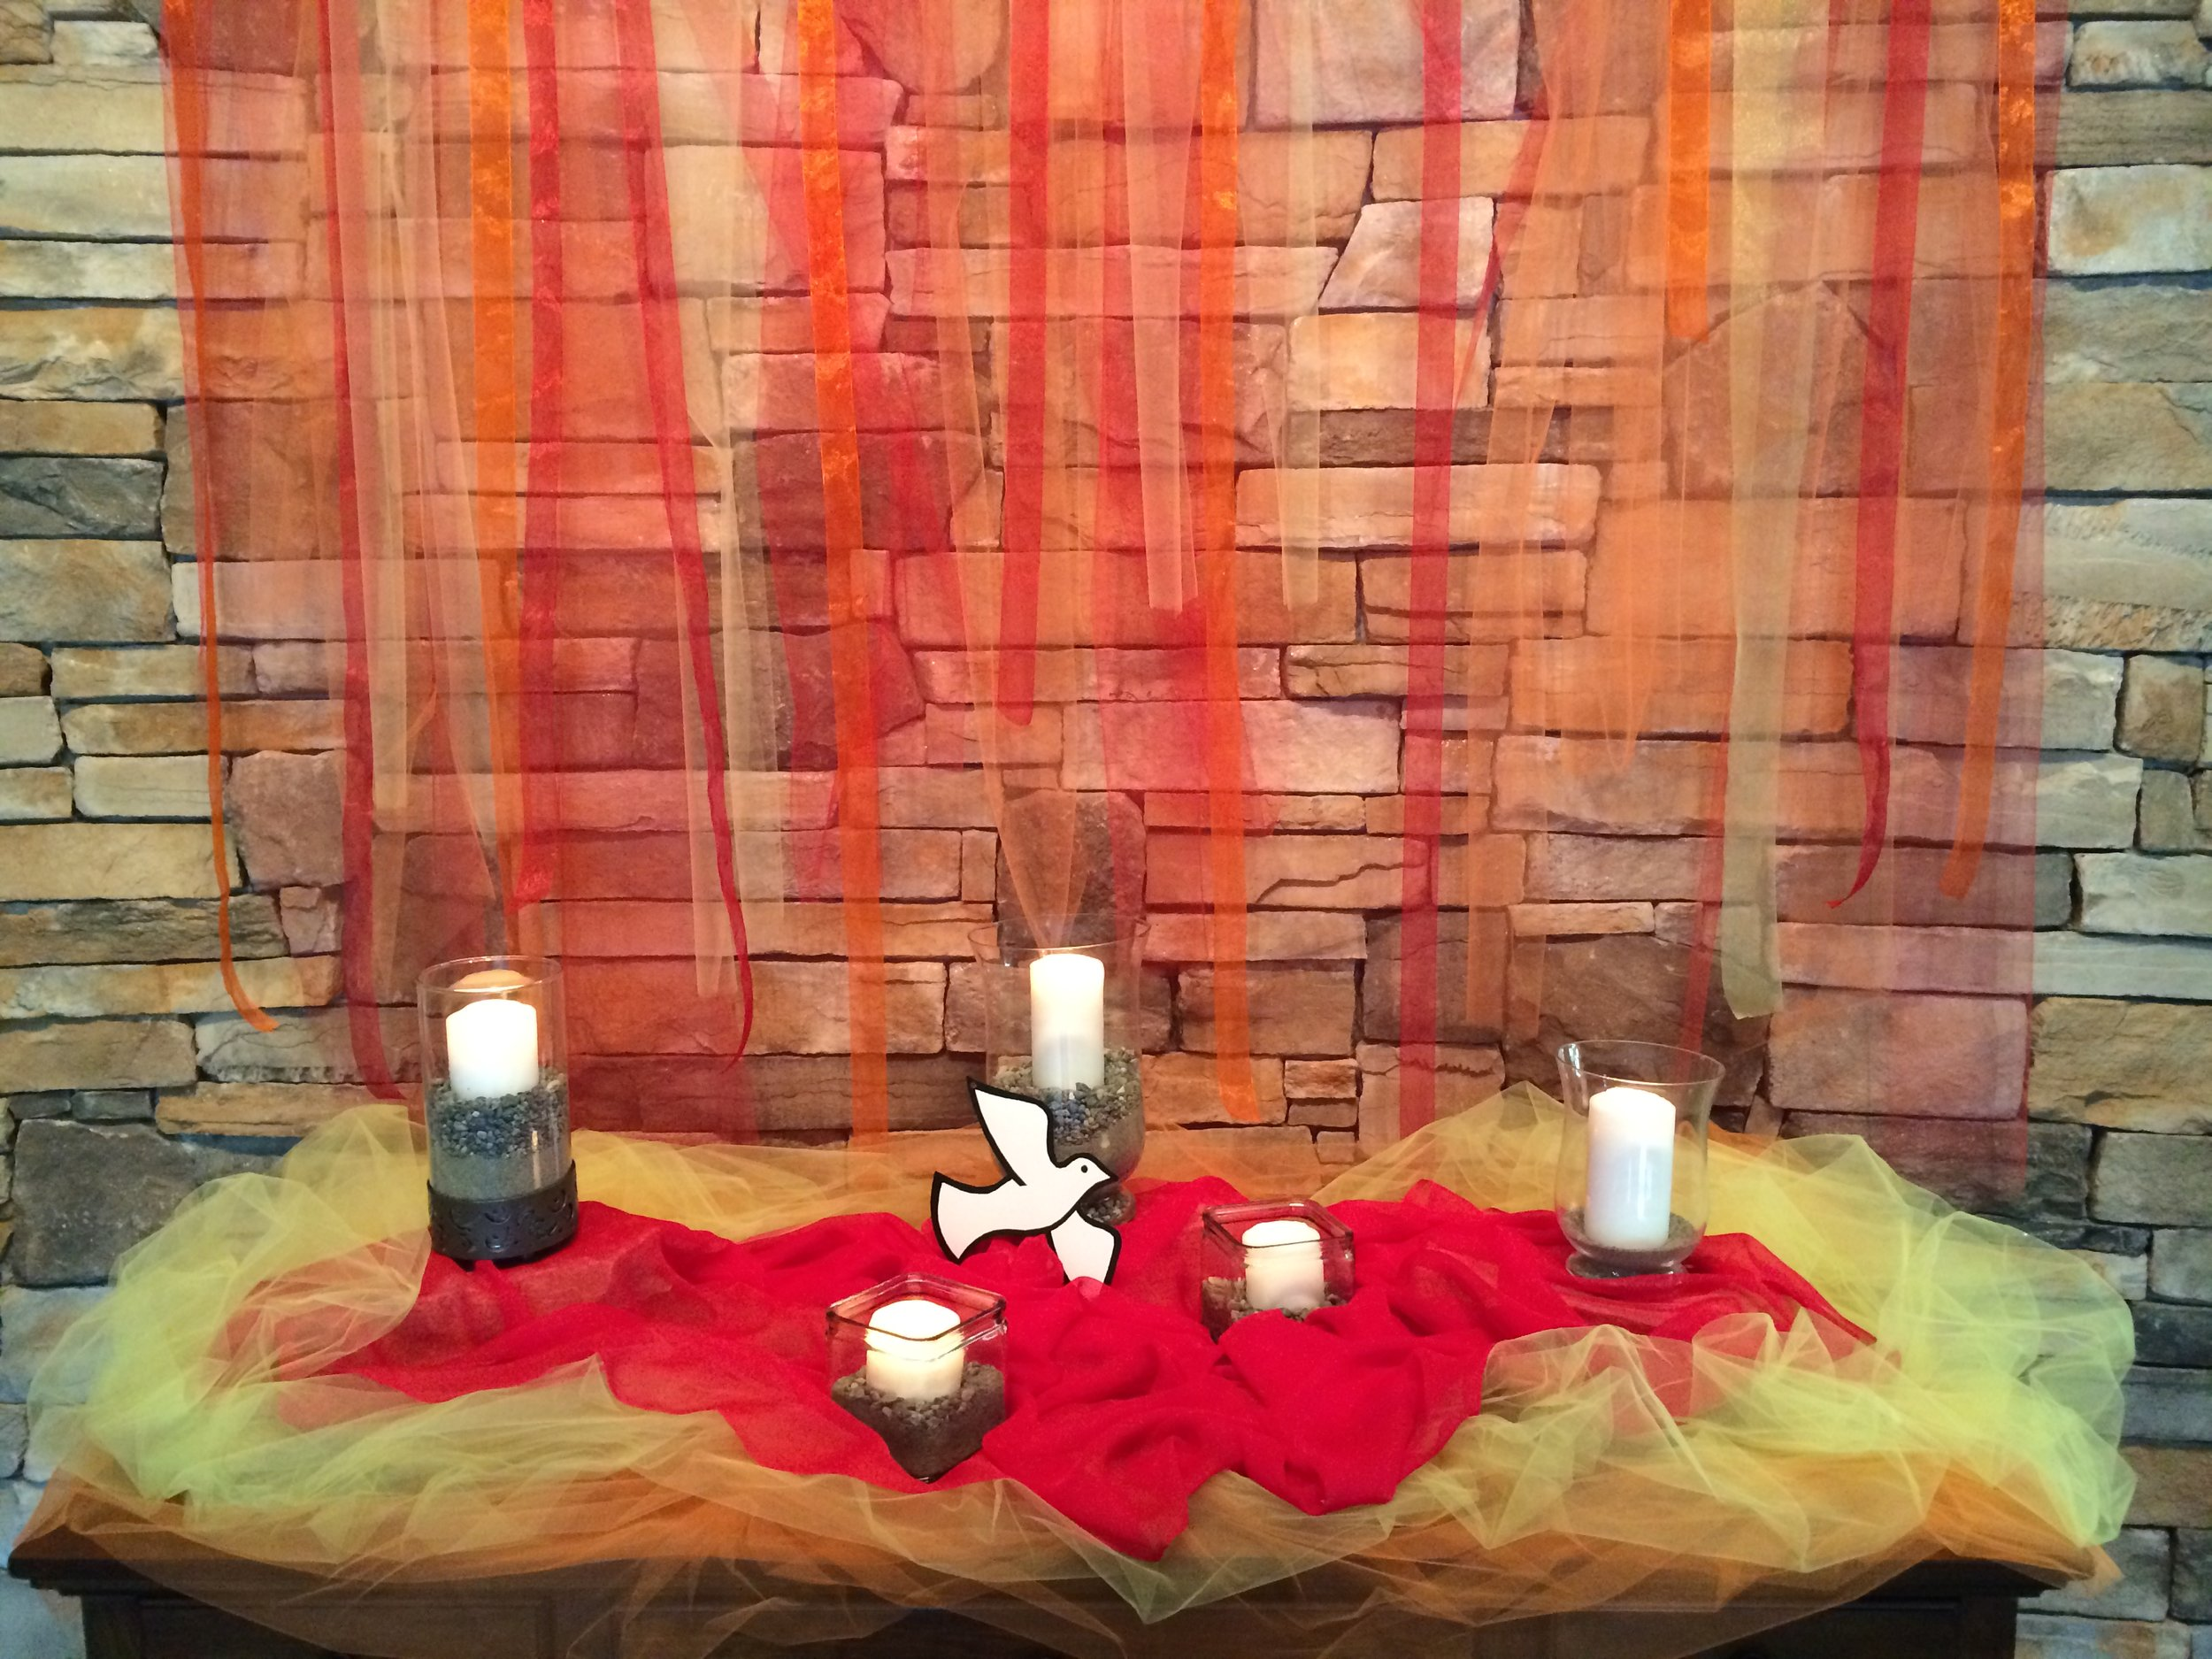 The altar is set for Holy Week at Shepherd of the Hills Lutheran Church in Sammamish, WA.